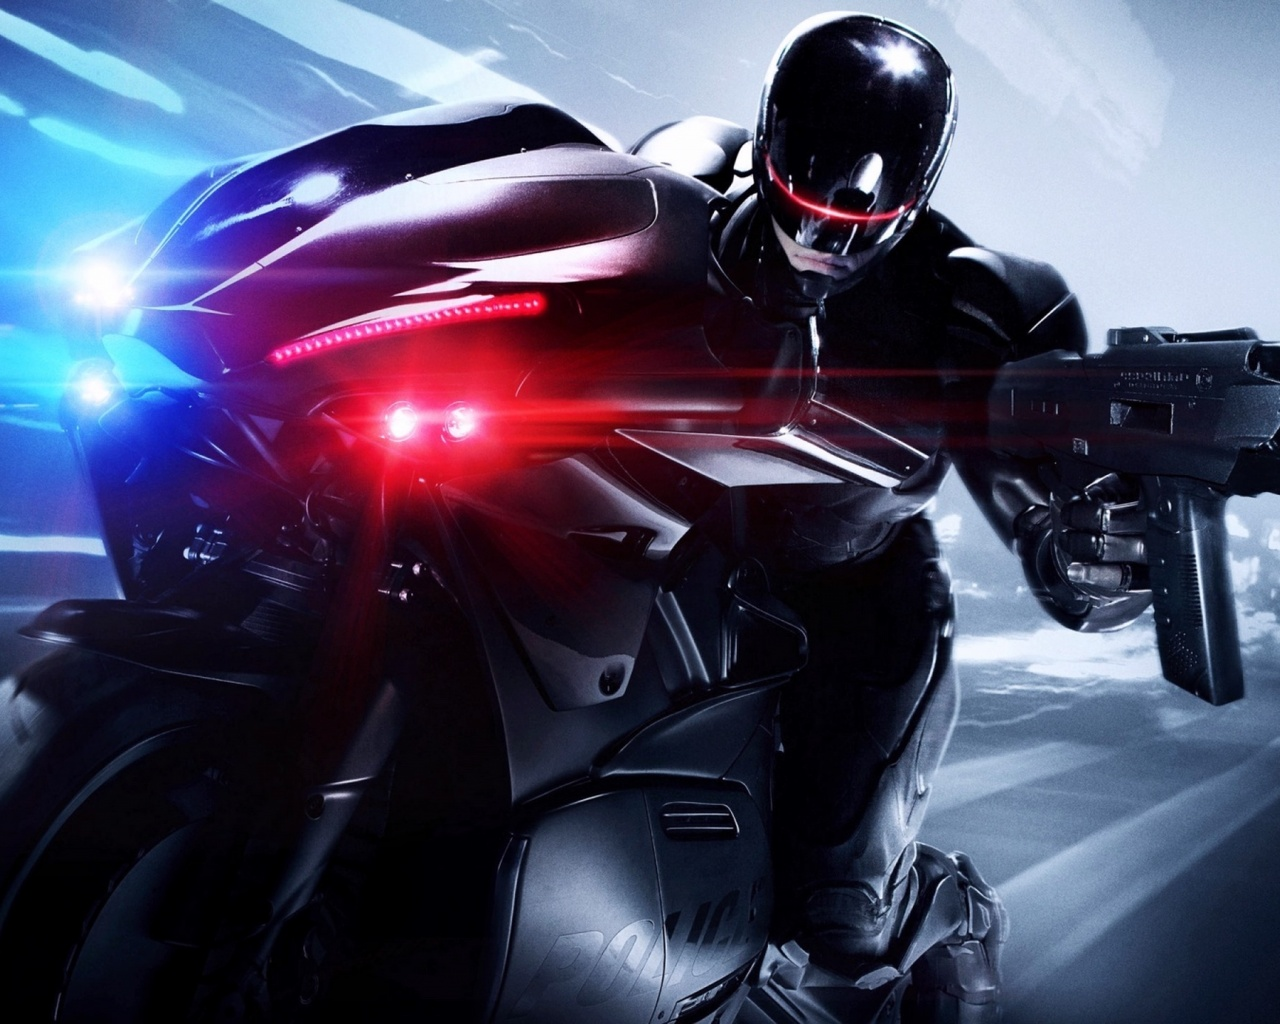 robocop_2014_movie-1280x1024